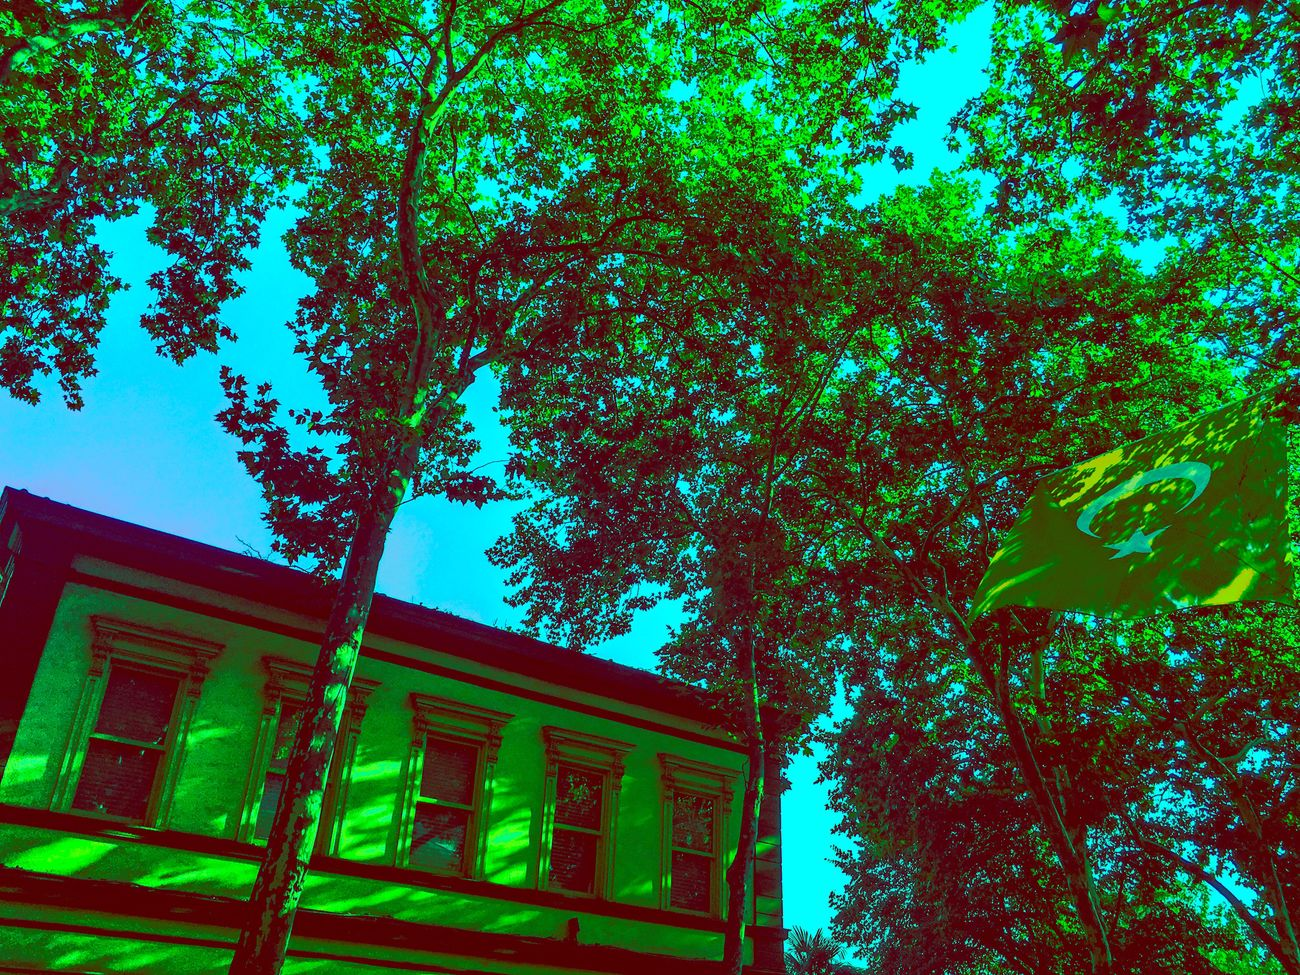 Tree Architecture Built Structure Low Angle View Building Exterior Growth Branch Tree Trunk Green Color Outdoors Day No People Sky High Section Multi Colored Vscocam First Eyeem Photo Awesome EyeEm Best Shots Türkiye Beşiktaş ❤ Green Color